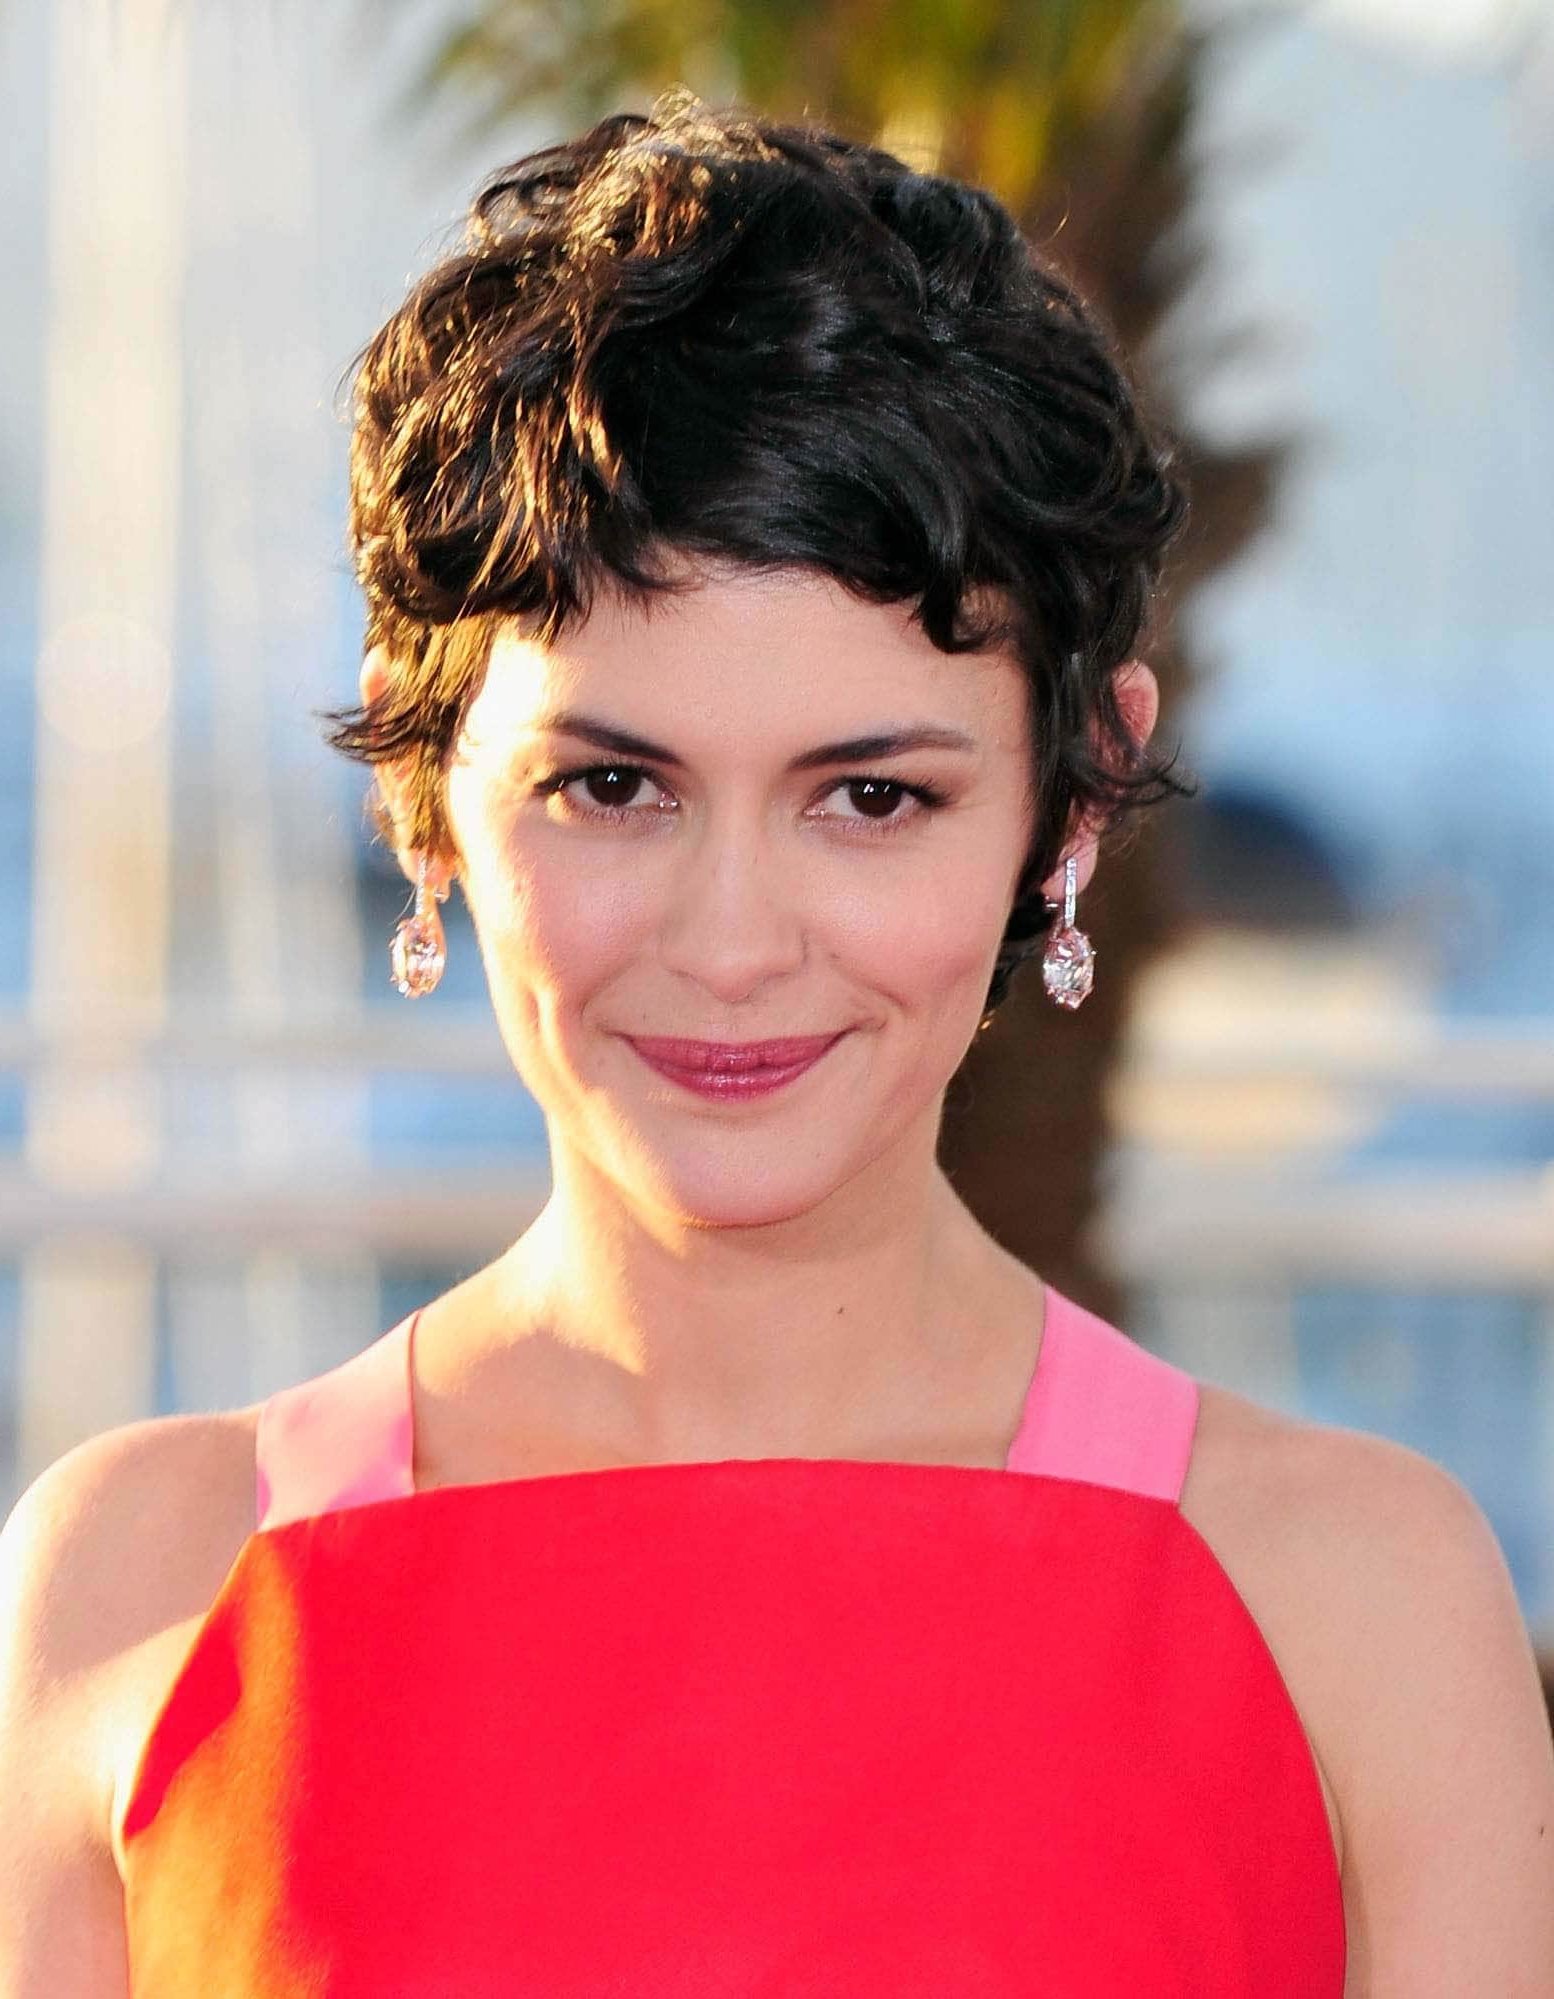 Classy Short Hairstyles From 5 Iconic Women | All Things Hair Uk With Audrey Tautou Short Haircuts (View 4 of 25)